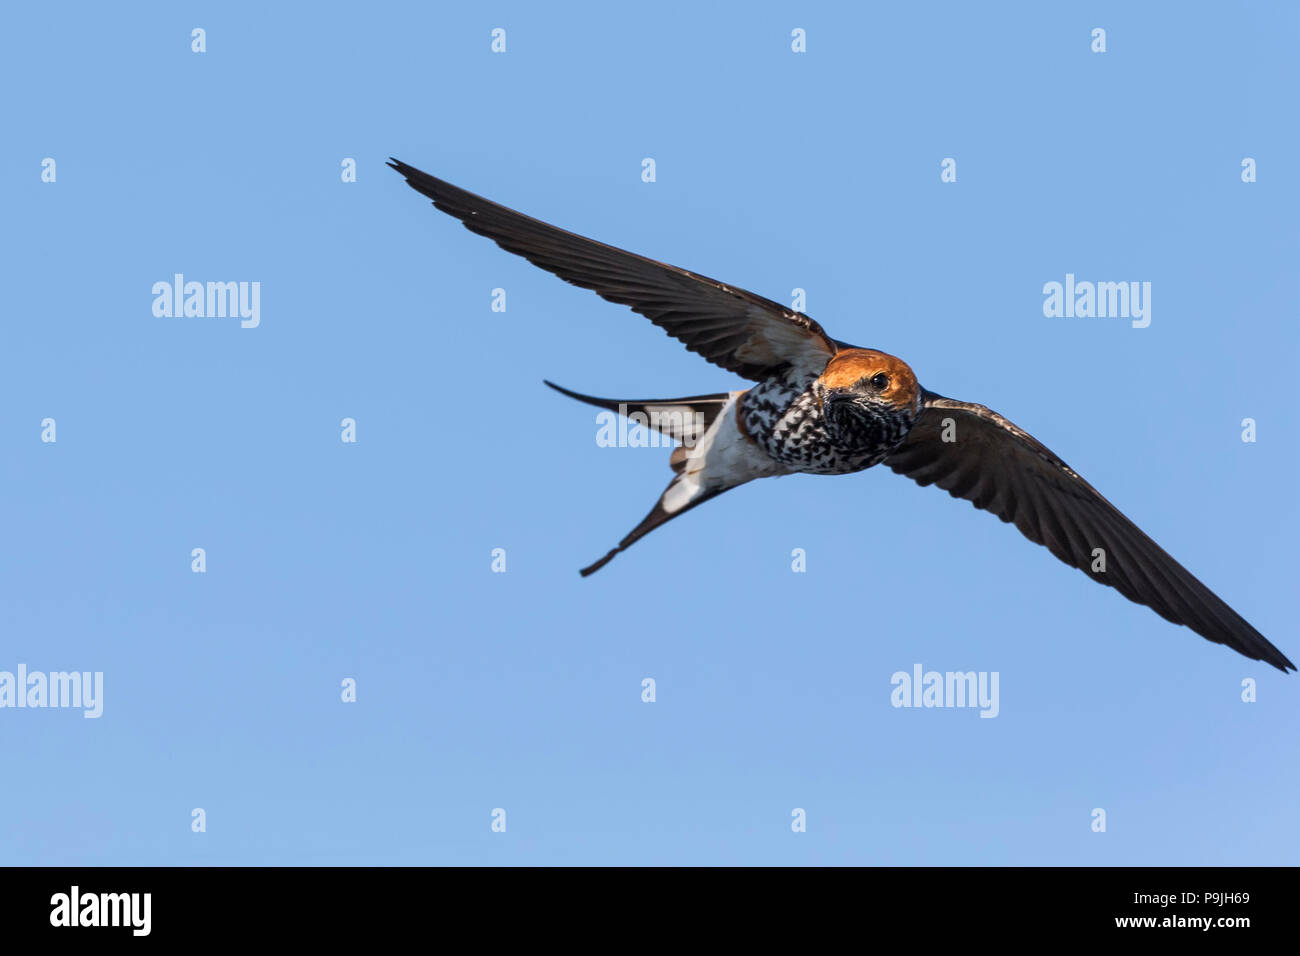 Lesser striped swallow (Cecropis abyssinica), Chobe river, Botswana, - Stock Image